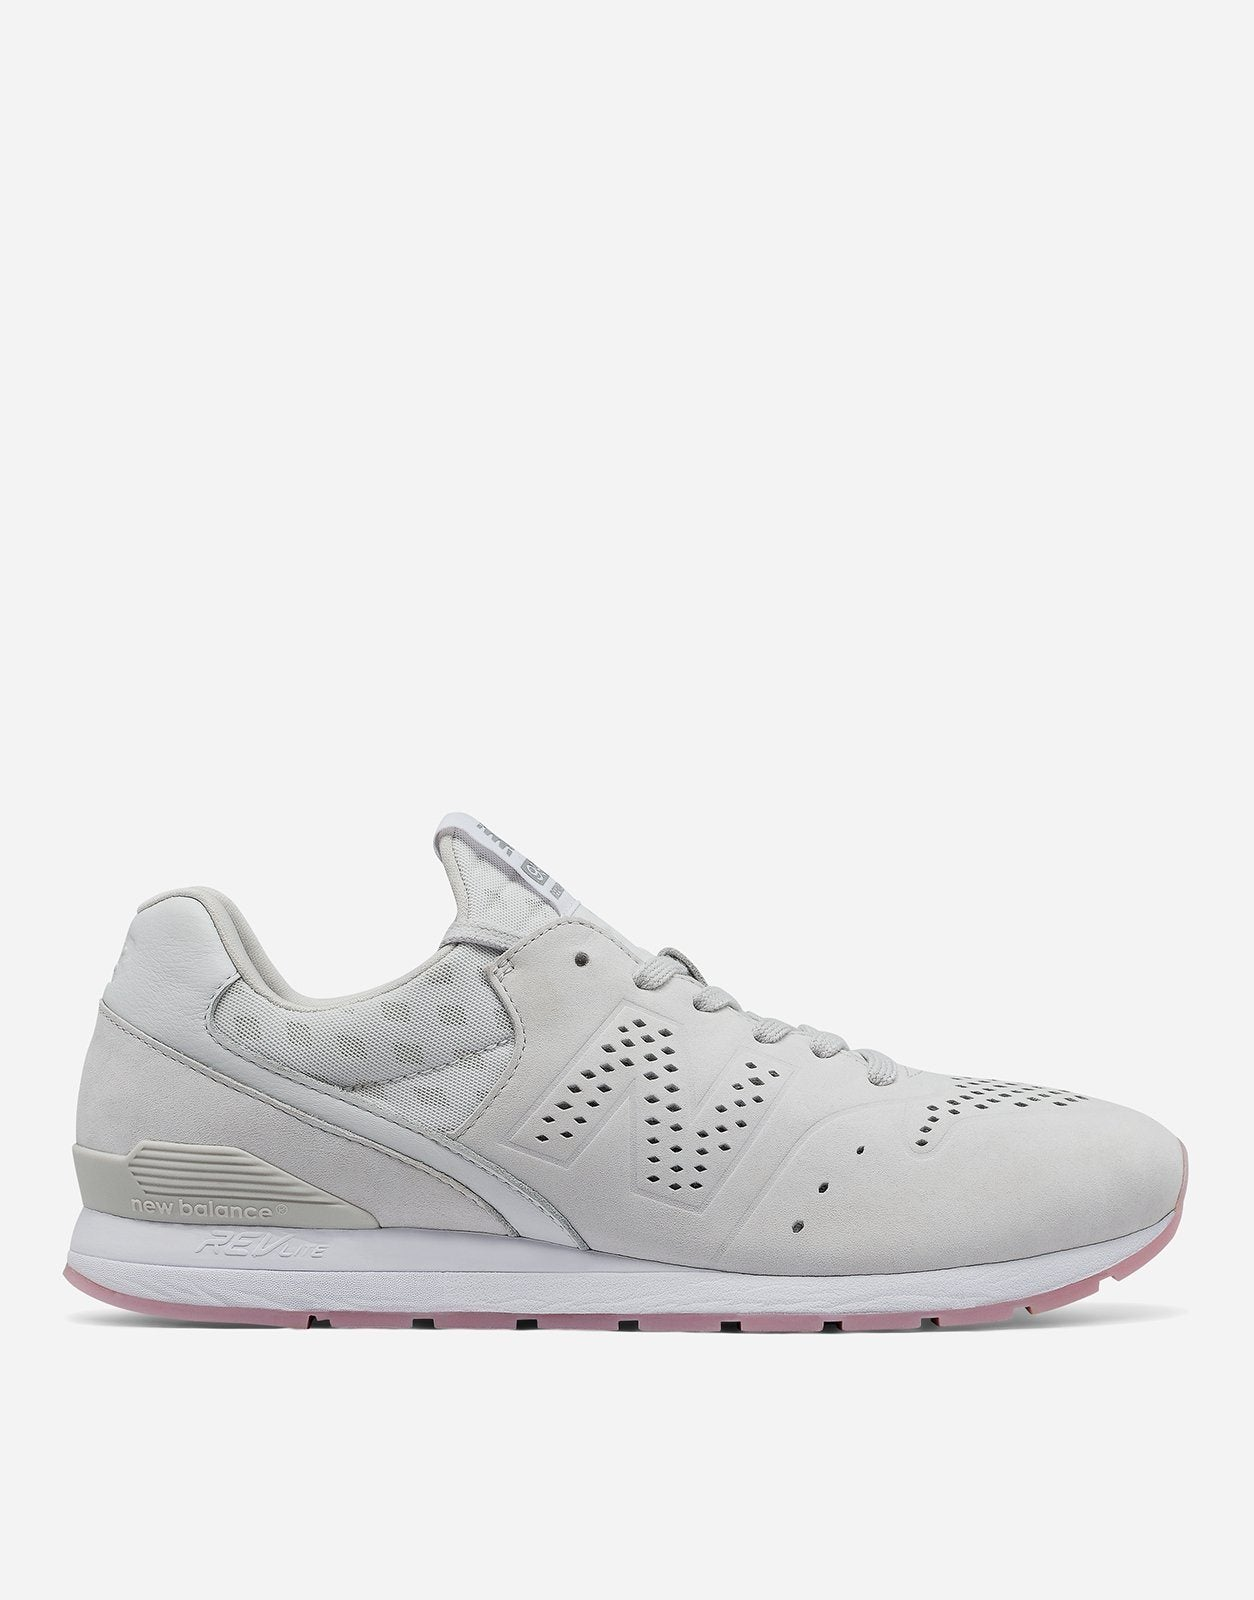 huge selection of f7ccd 8f701 New Balance Lifestyle White Sneaker